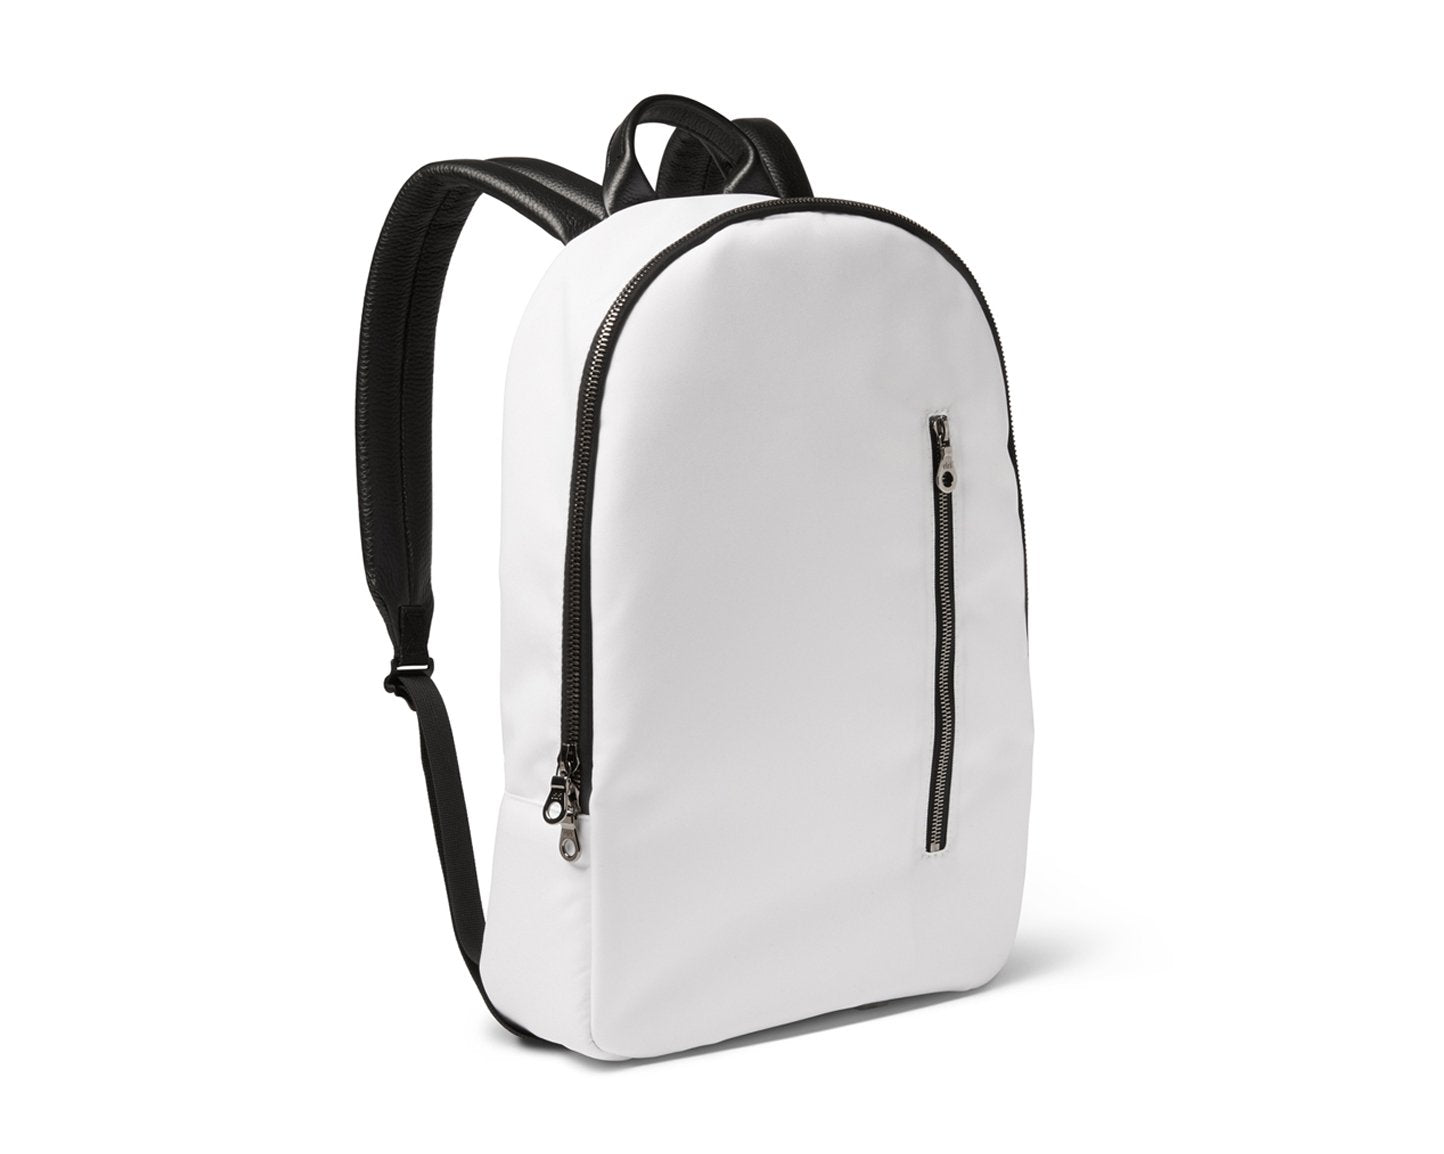 SPECIAL OPS BACKPACK 3.0 | KILLSPENCER® - White Nylon